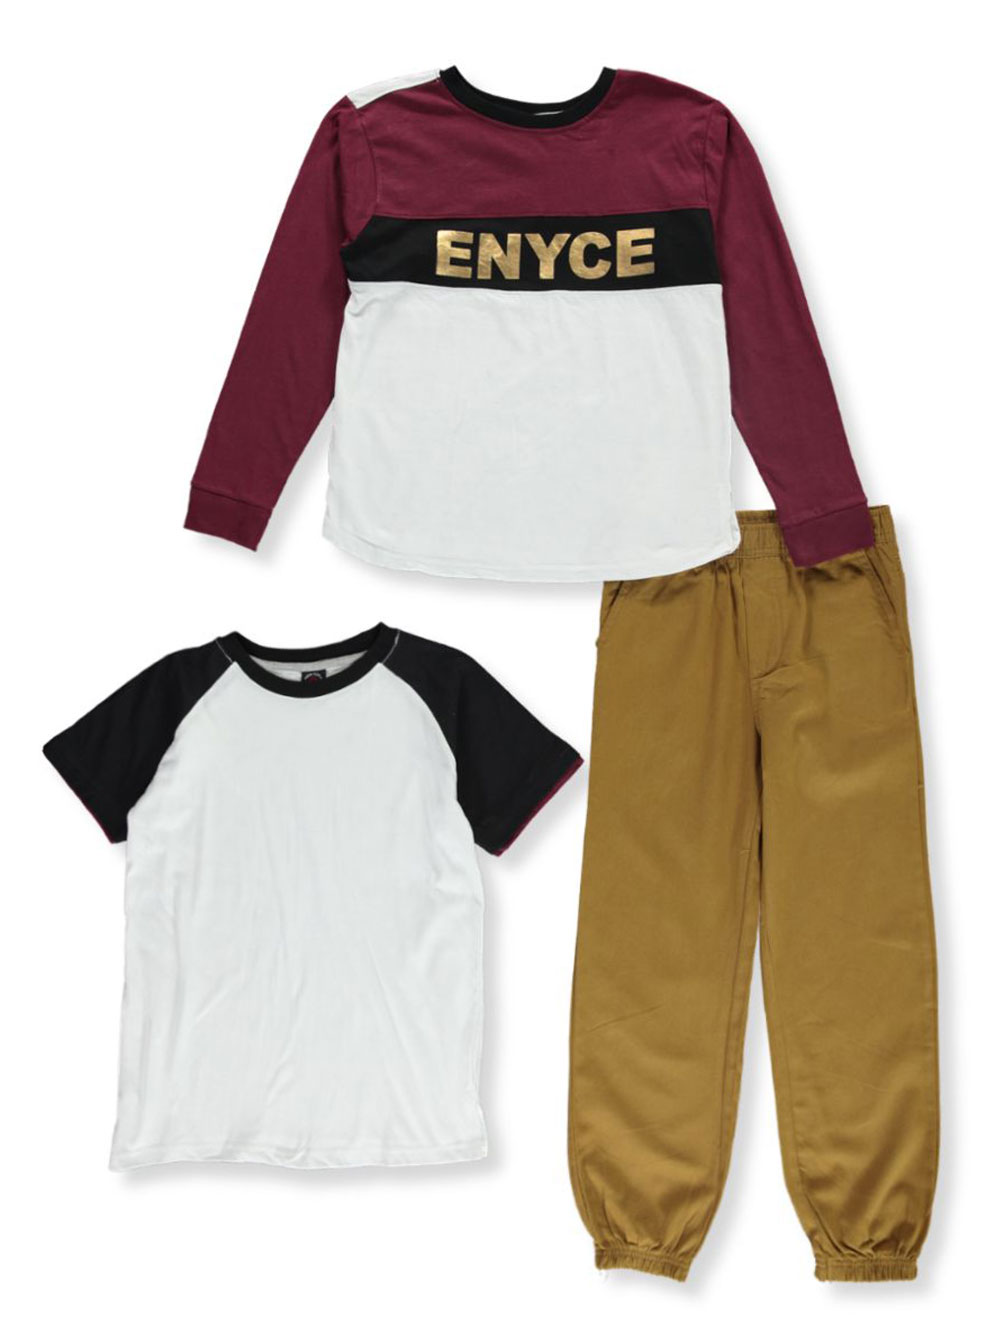 Size 16-18 Sets for Boys